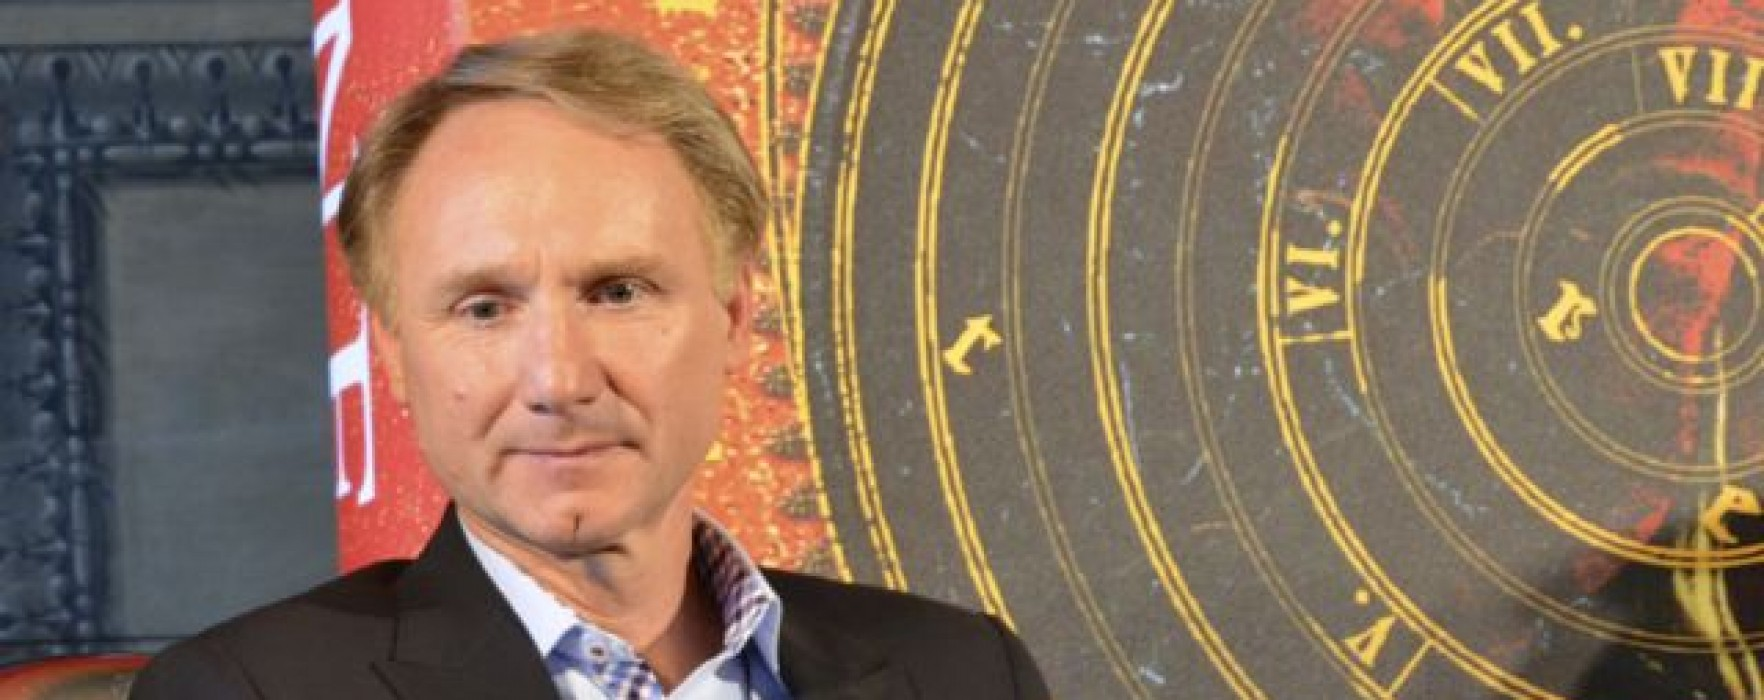 Dan Brown a Firenze: la fiction è la vita senza la parte noiosa